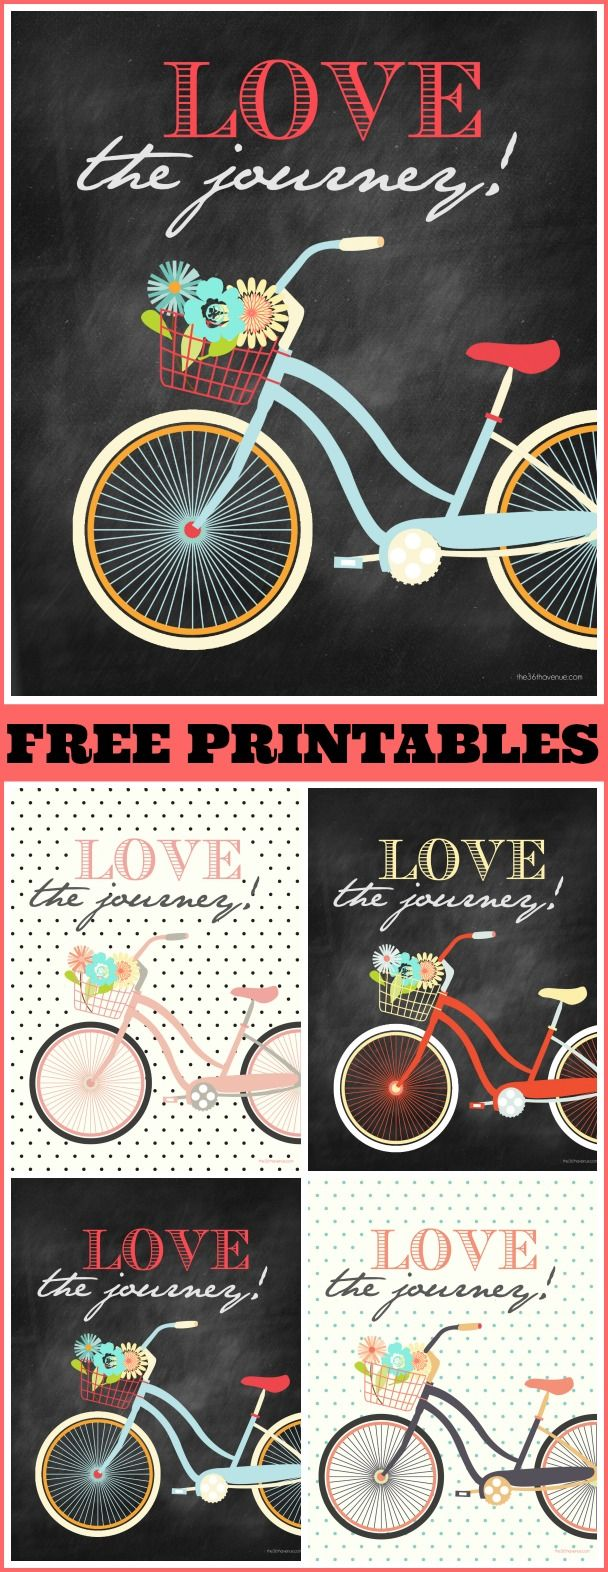 Free Love the Journey Printables from the36thavenue.com